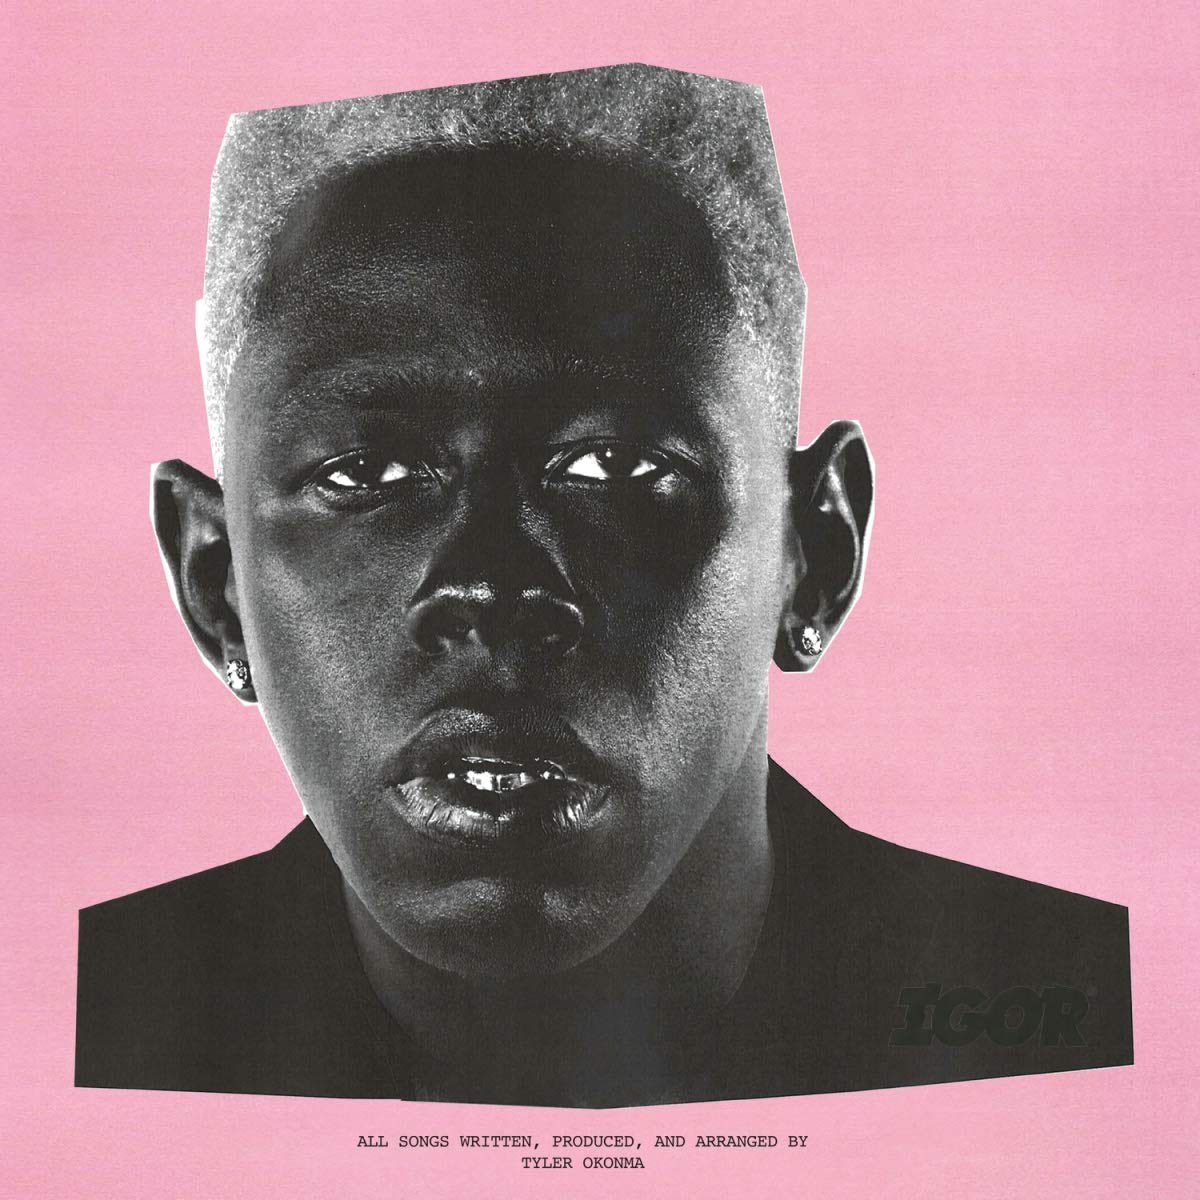 Replying to @XXL: Igor trending but this the Igor we care about